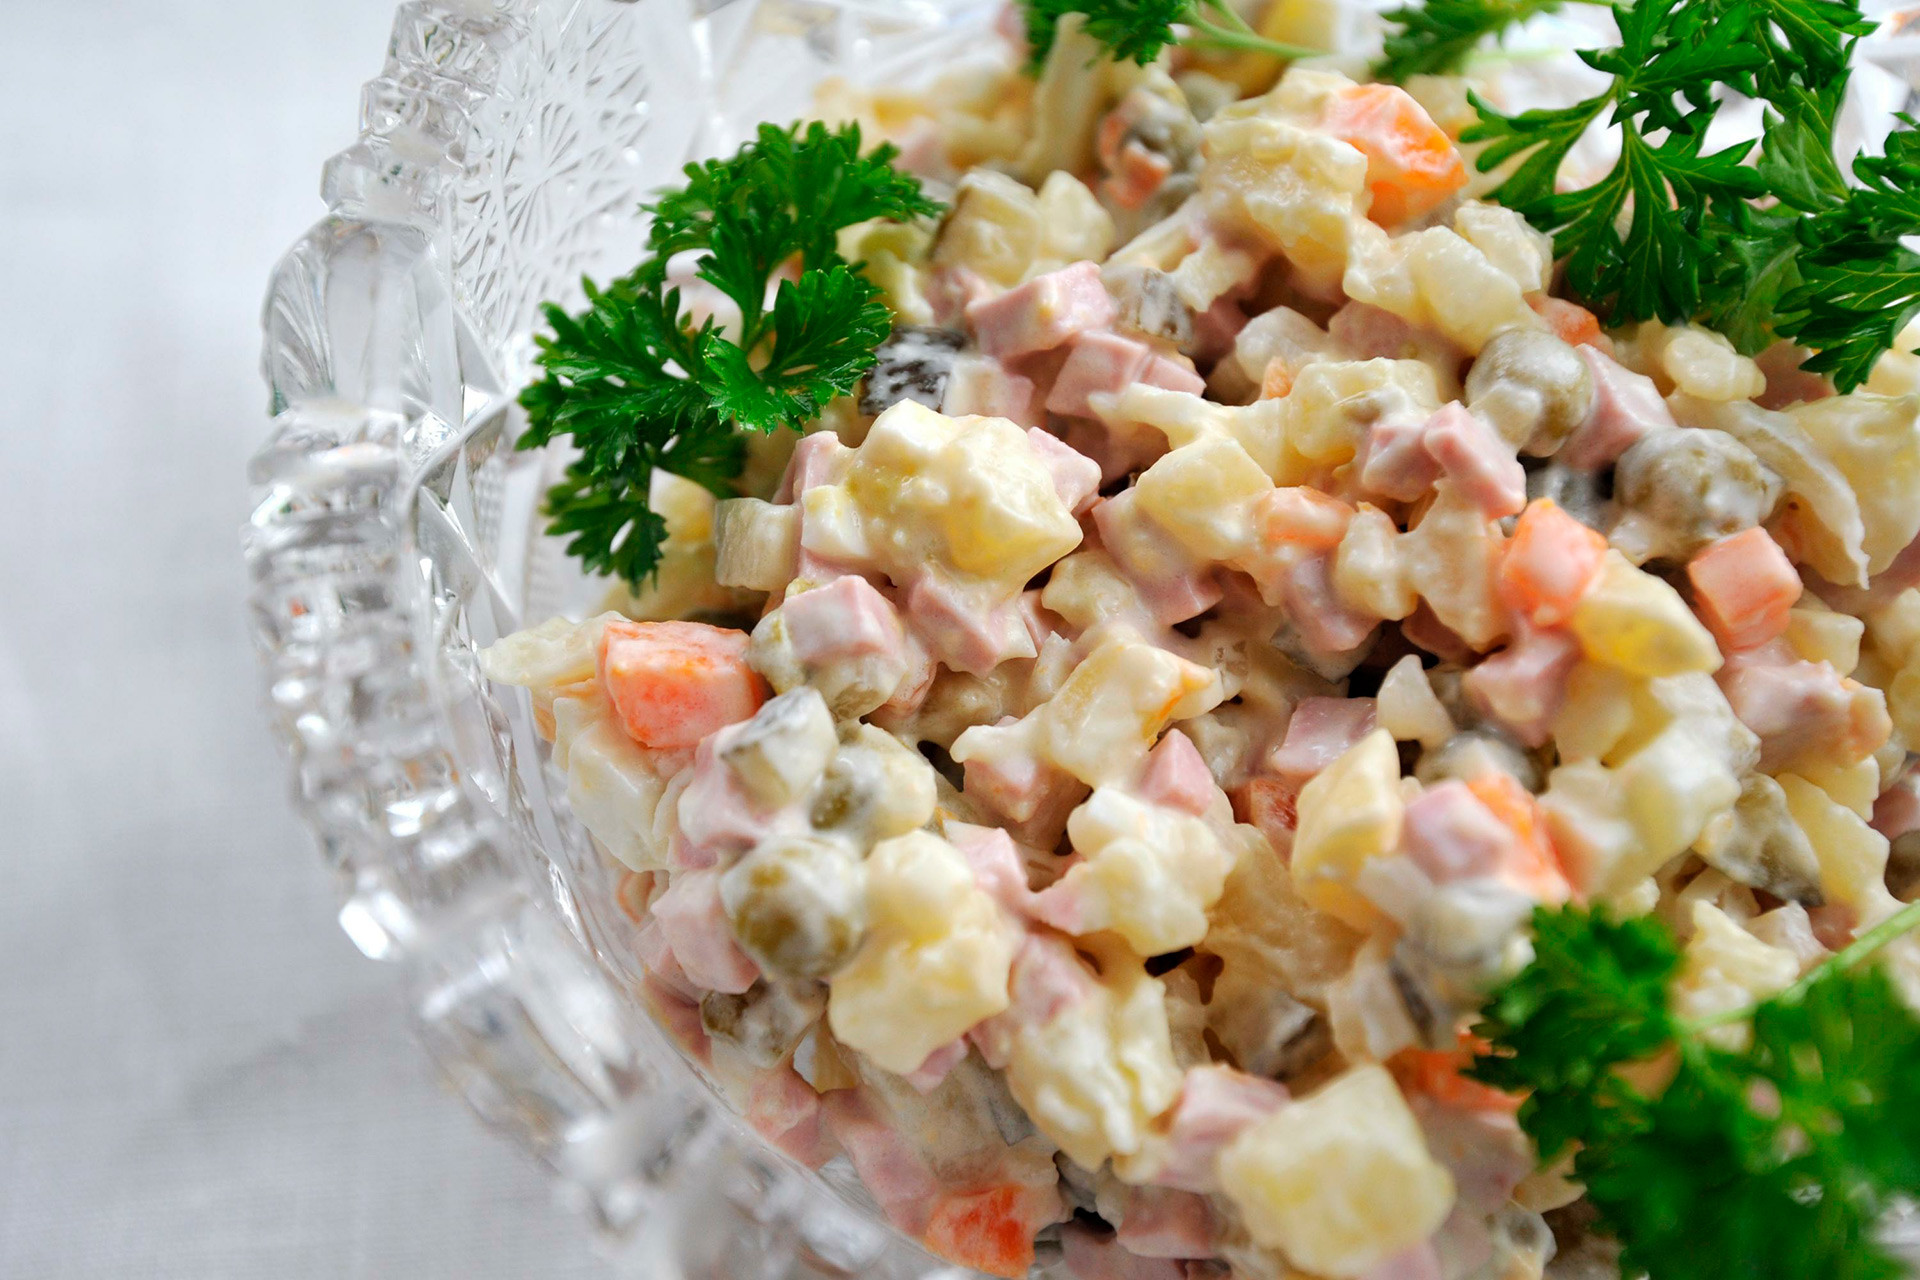 The Russian salad.